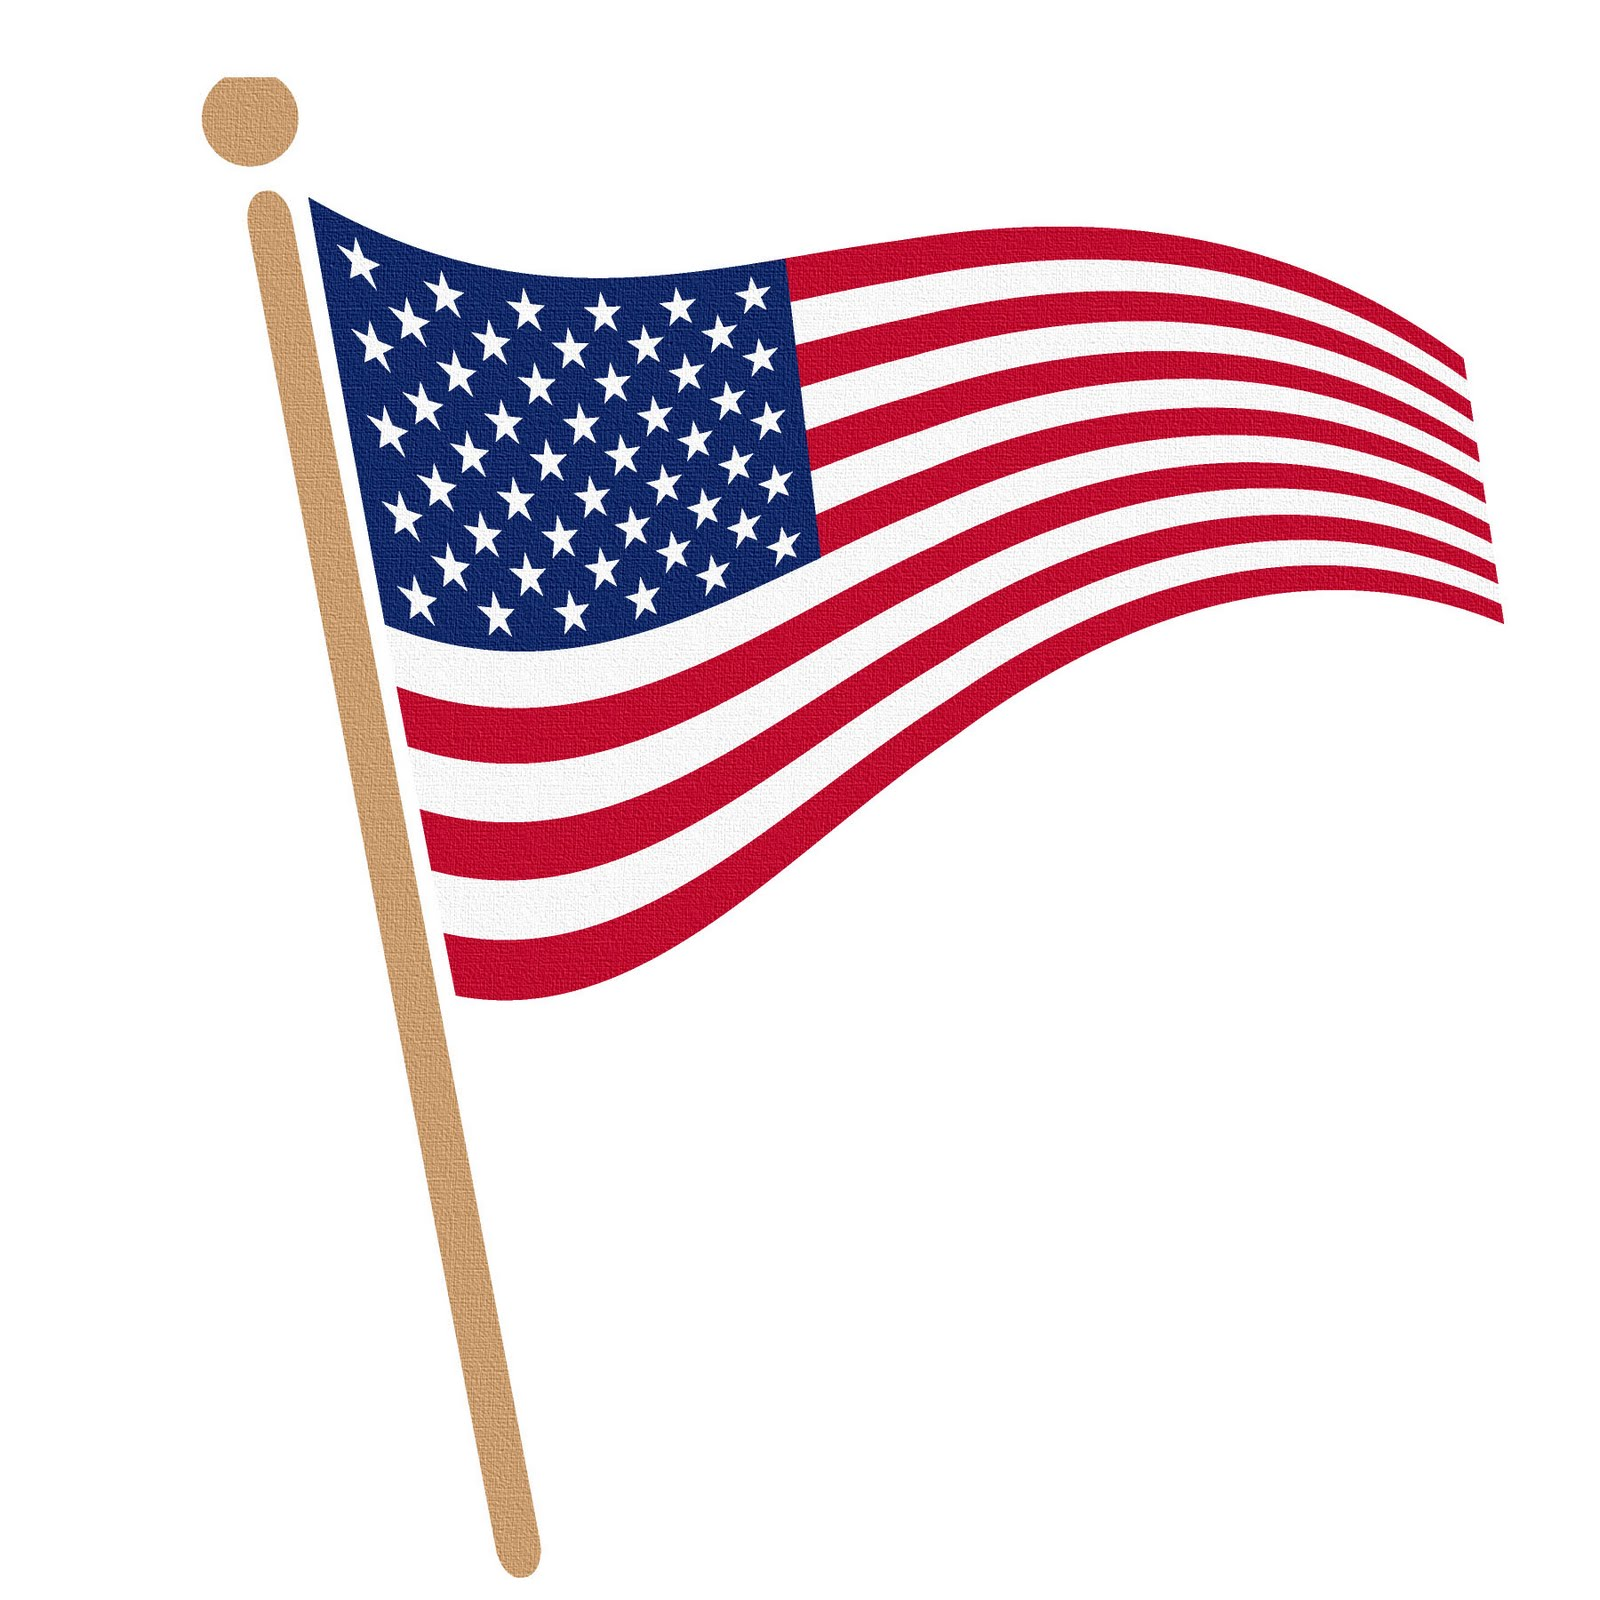 1600x1600 American Flag Clipart Black And White Free